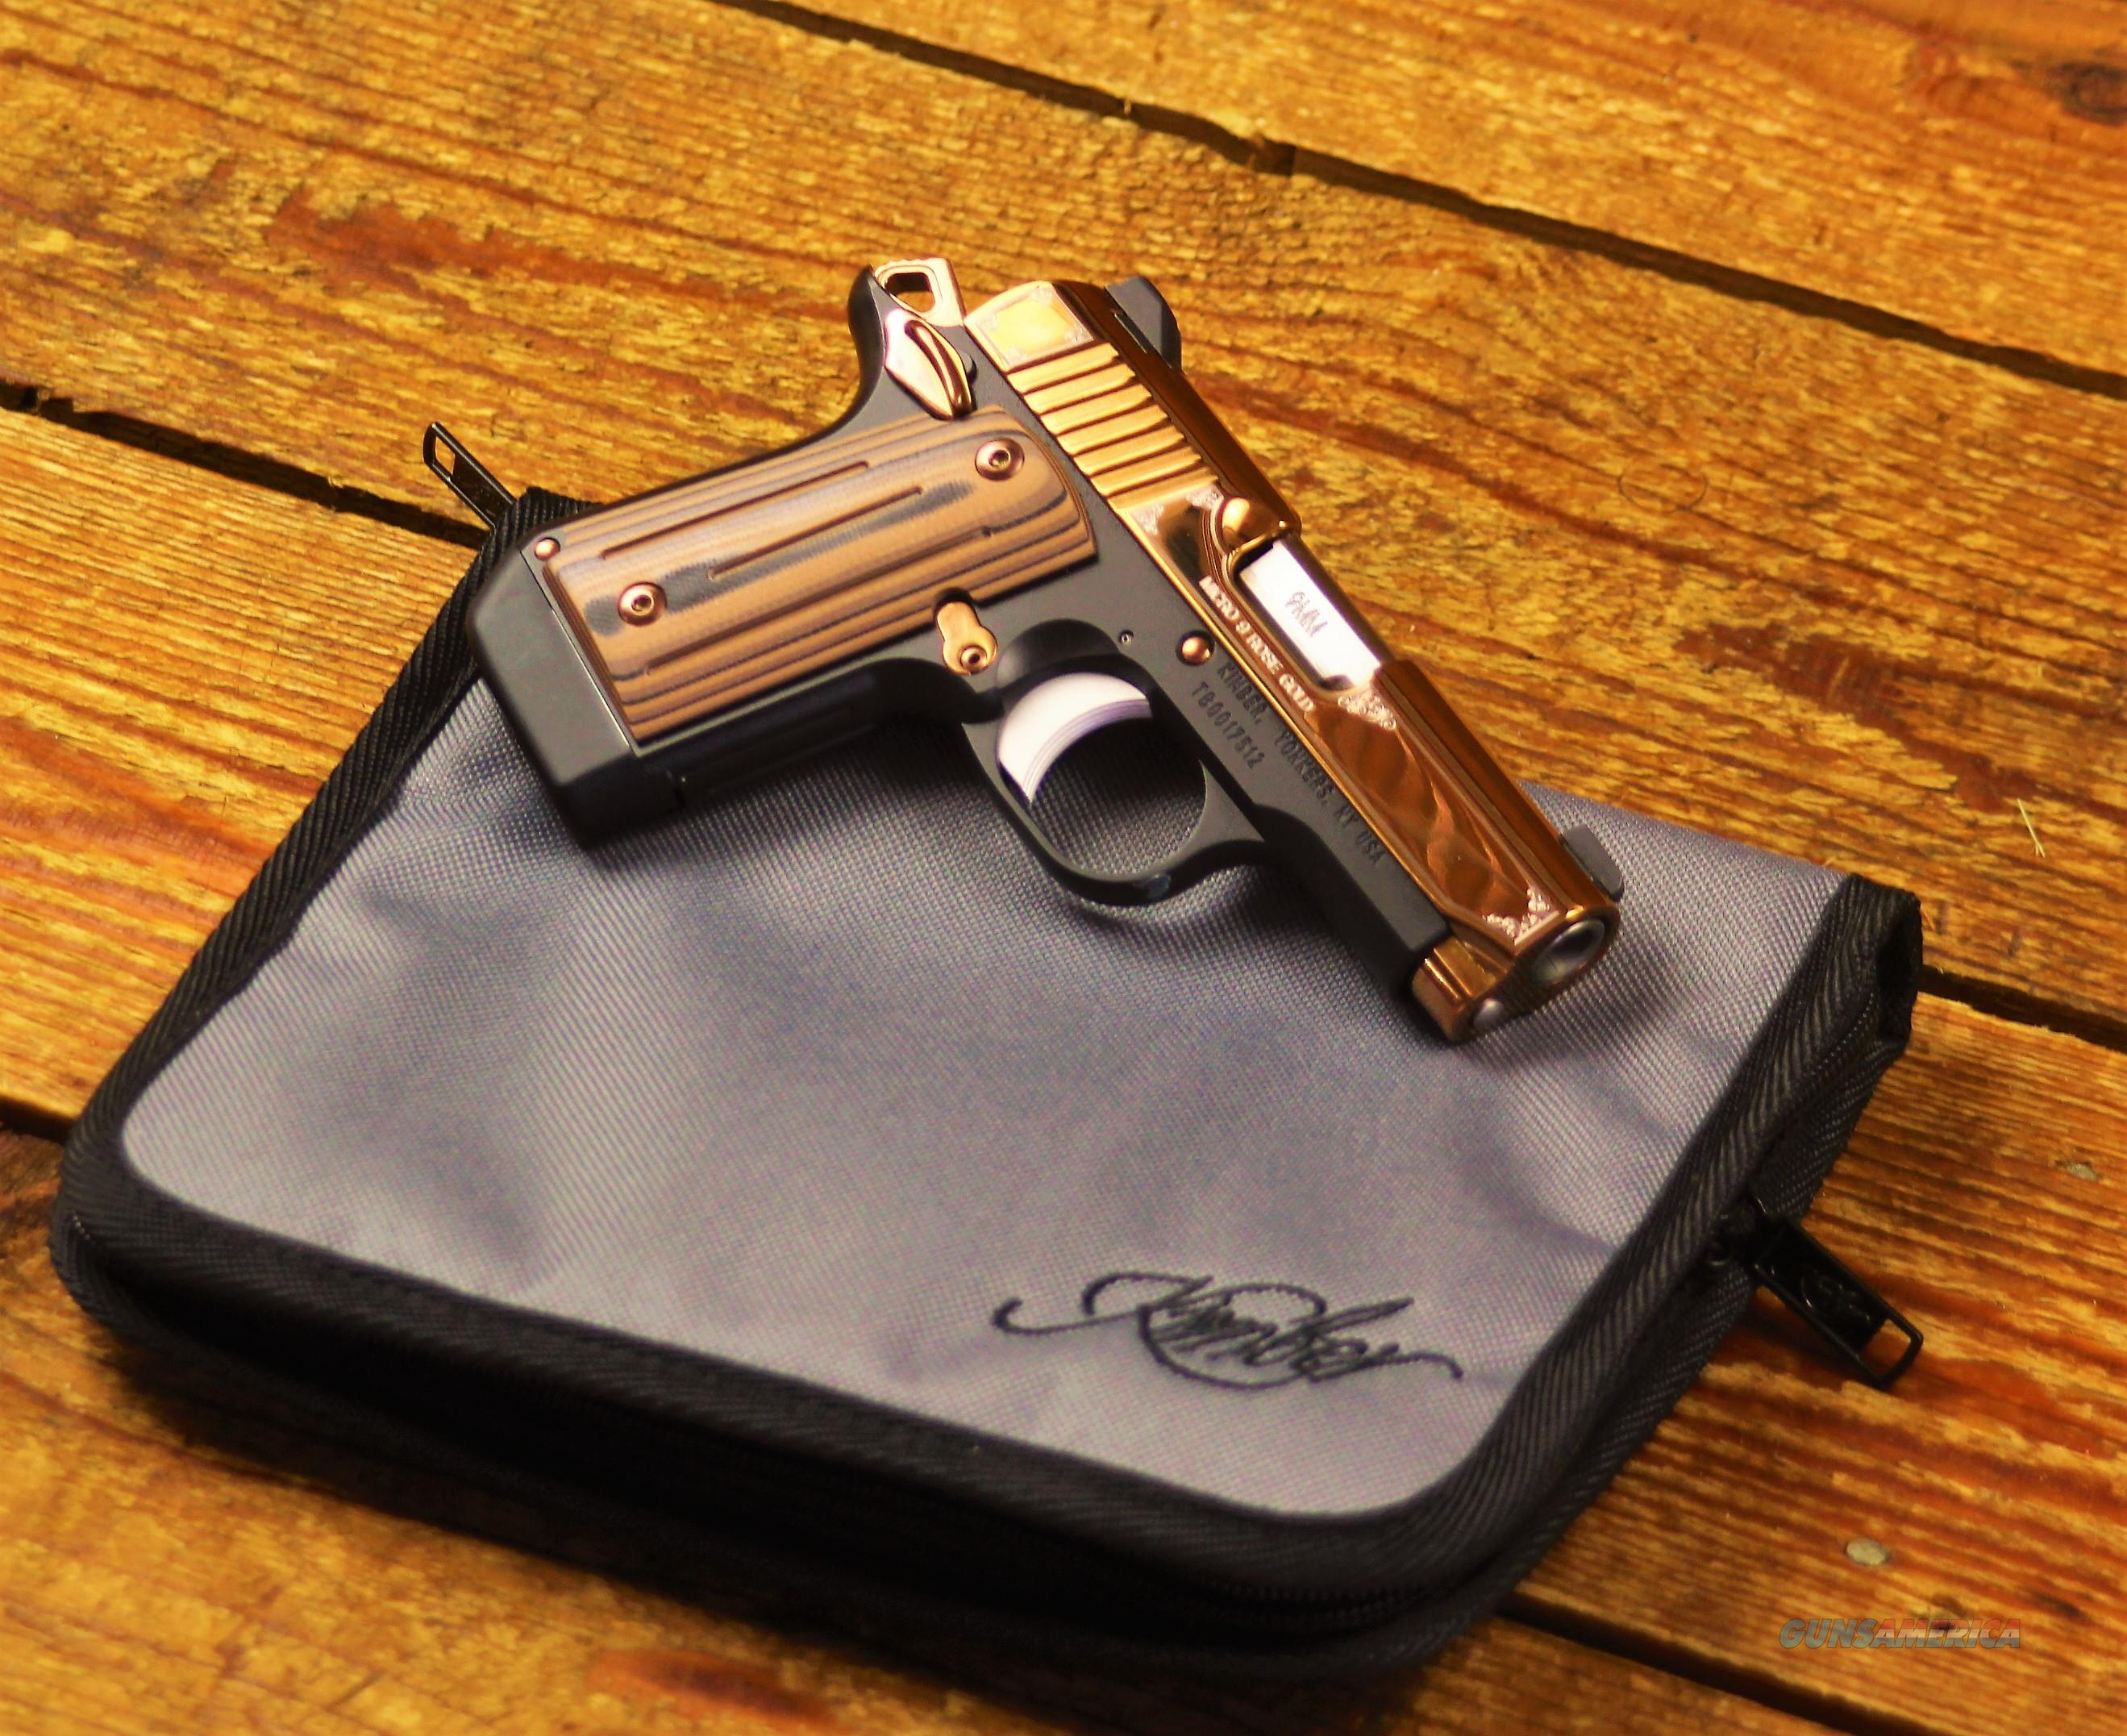 EASY PAY $85 DOWN LAYAWAY Personal Defense Concealed Carry Kimber Micro 9  Rose Gold PVD durable Coating Pistol 9MM 3 15